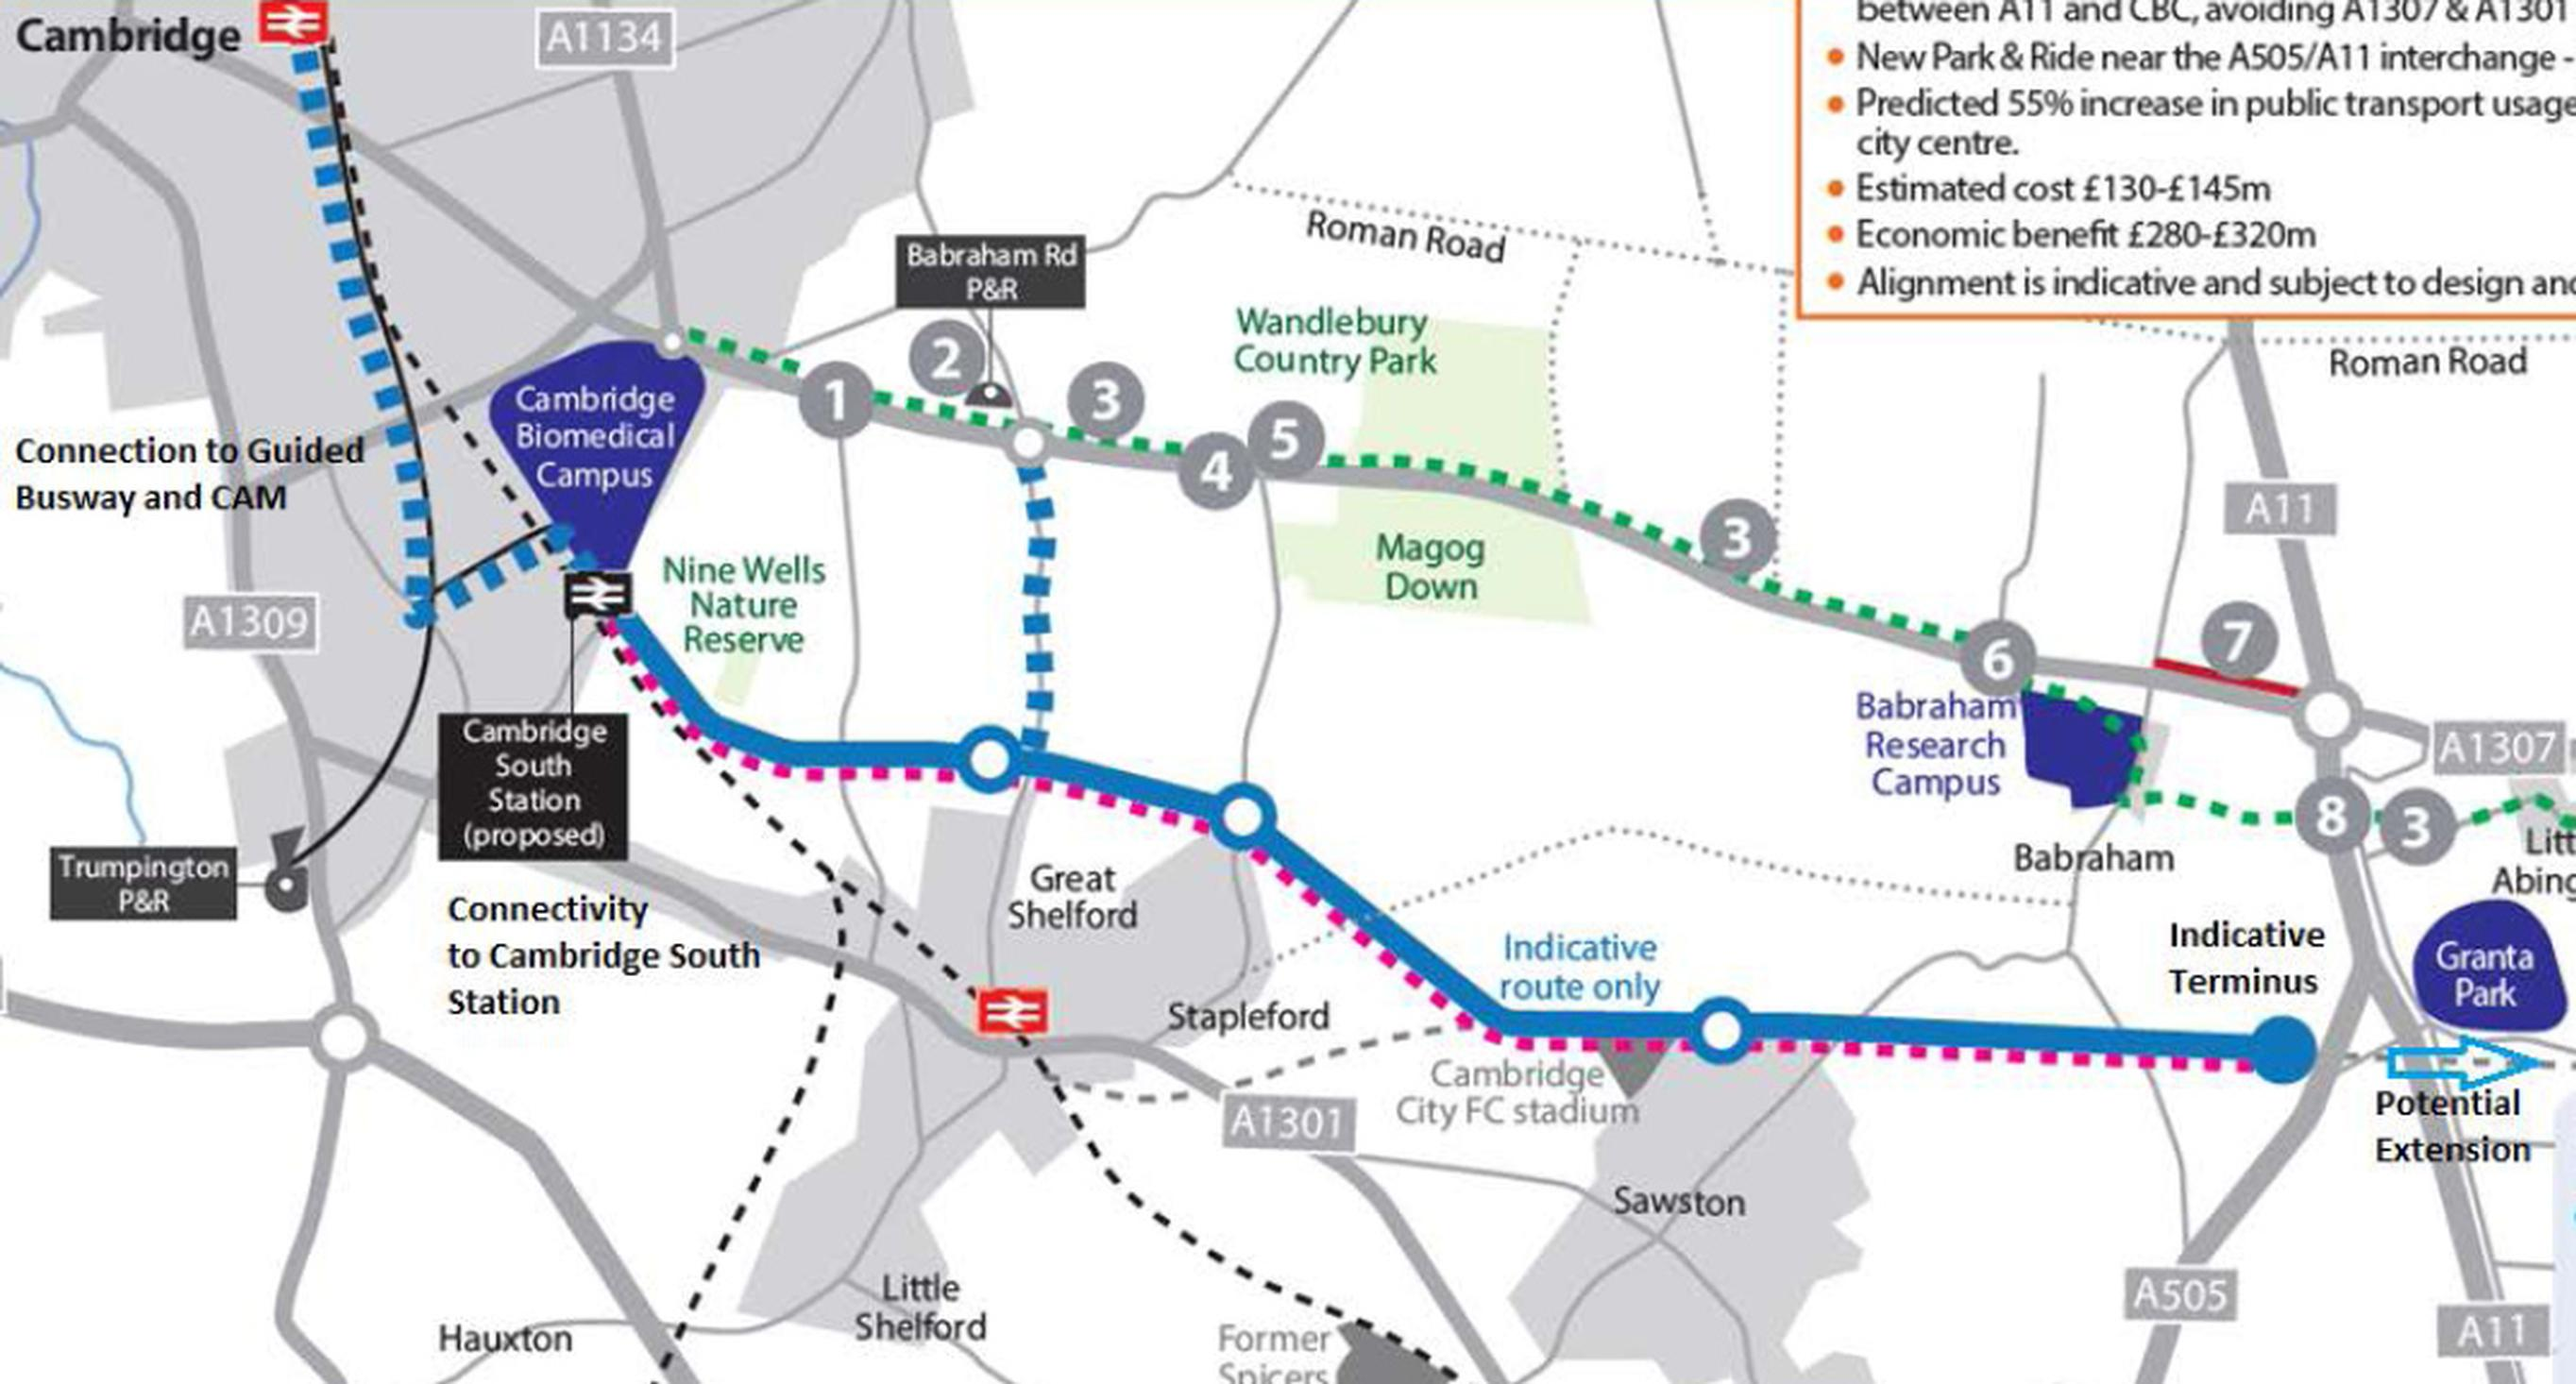 The five mile segregated route (blue) would run south of the A1307 (dotted green) and could join the existing busway in Cambridge